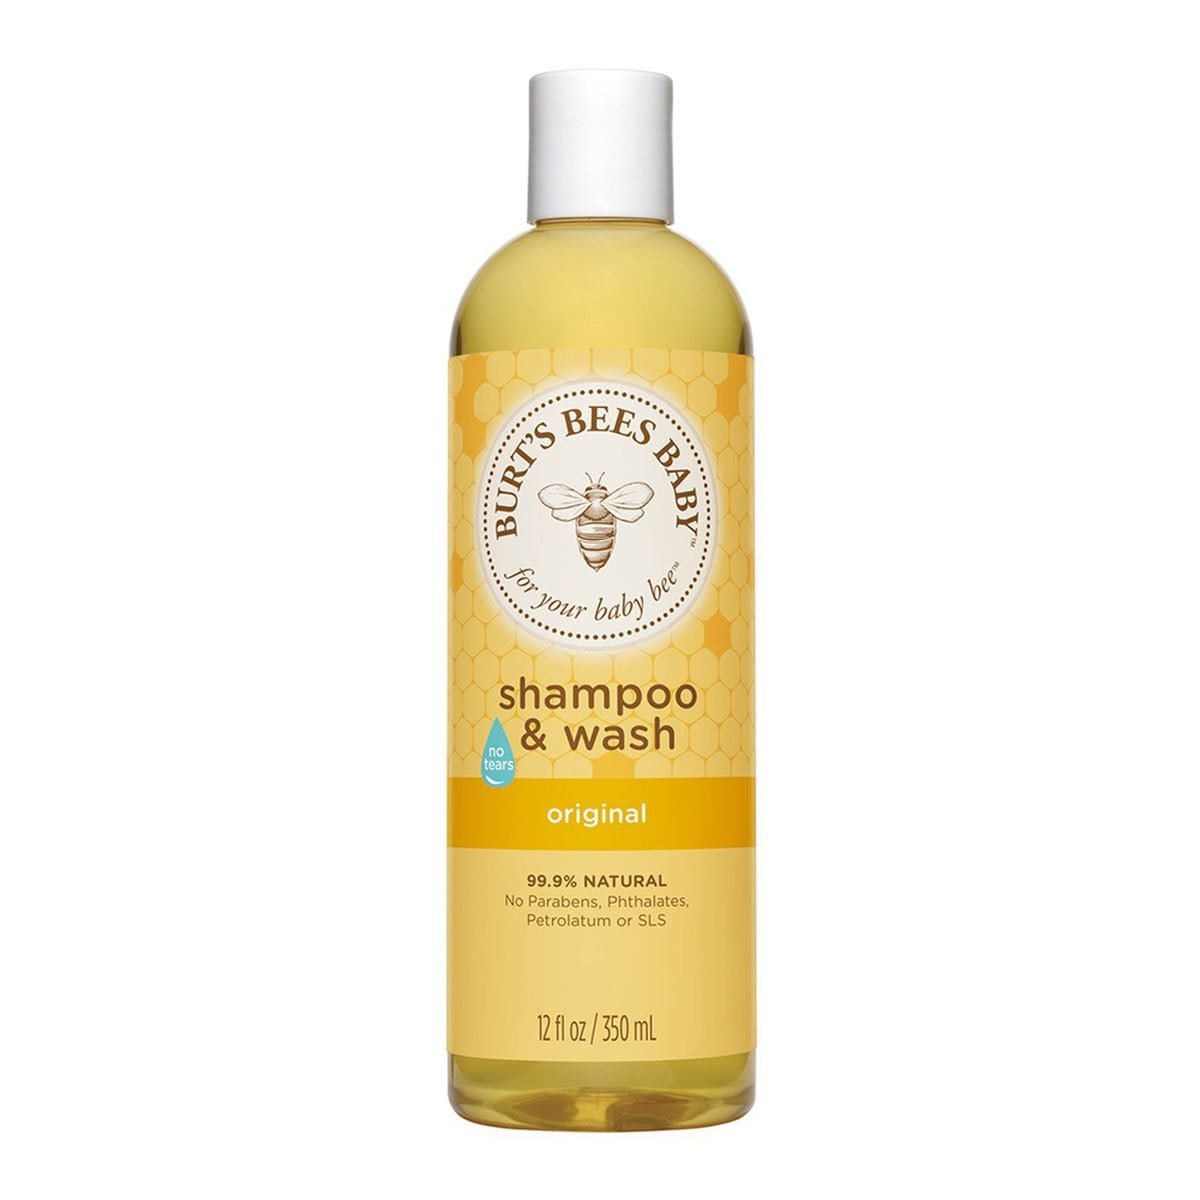 Baby bee shampoo & body wash  - Sanborns